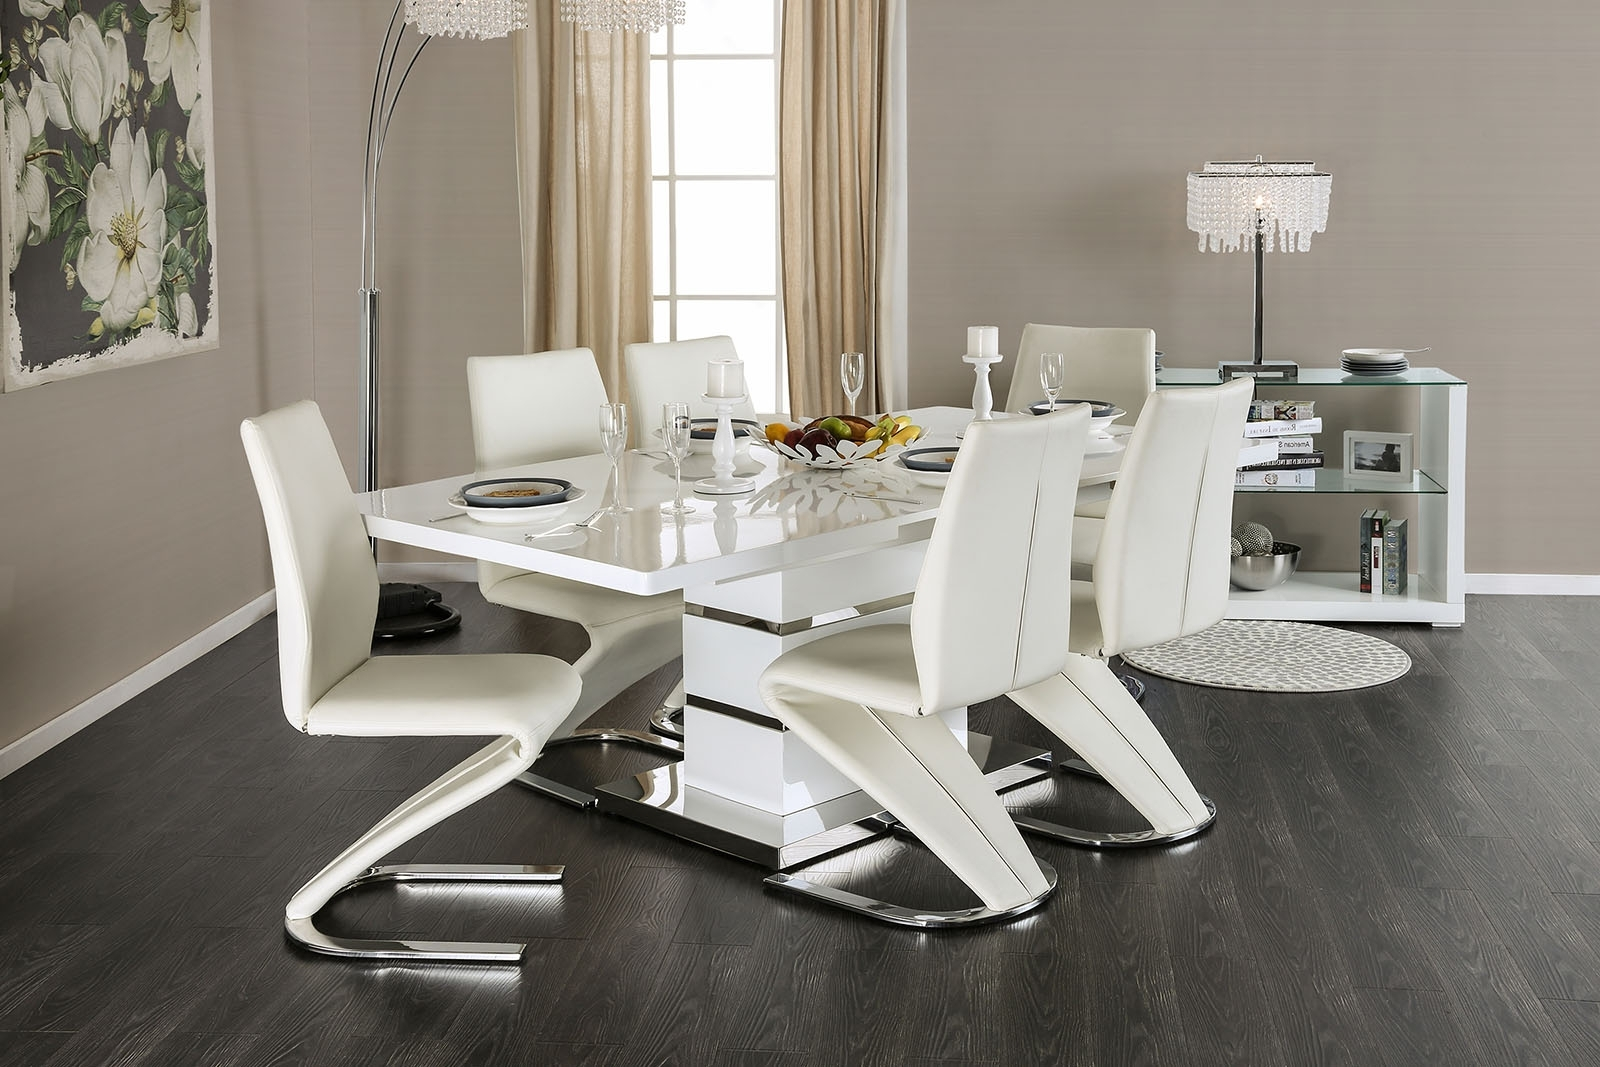 Most Recent High Gloss Dining Chairs With Regard To Midvale Contemporary Style White High Gloss Lacquer Finish & Chrome (Gallery 9 of 25)